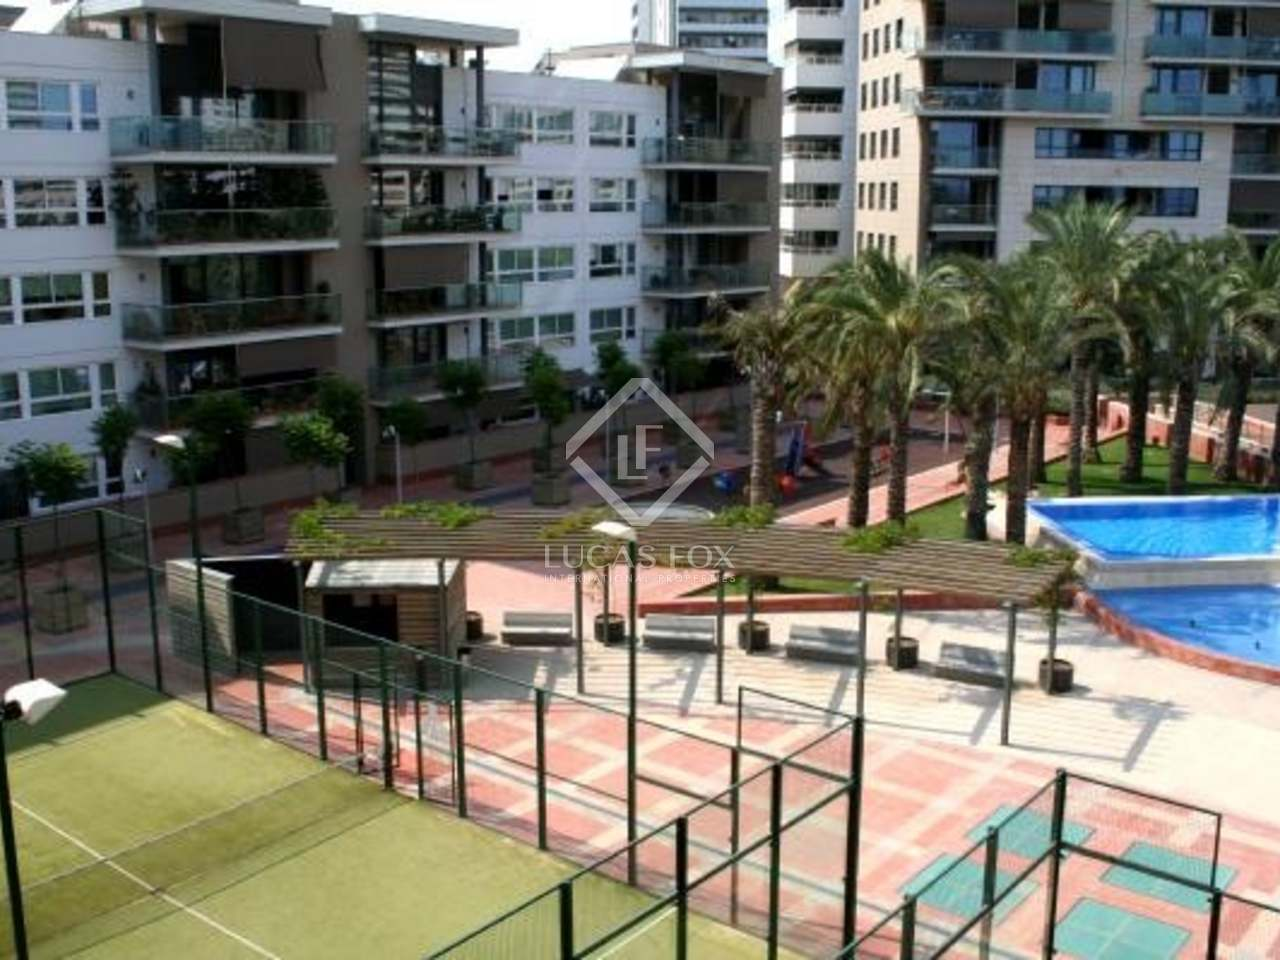 Appartement en vente diagonal mar barcelone for Appartement piscine barcelone